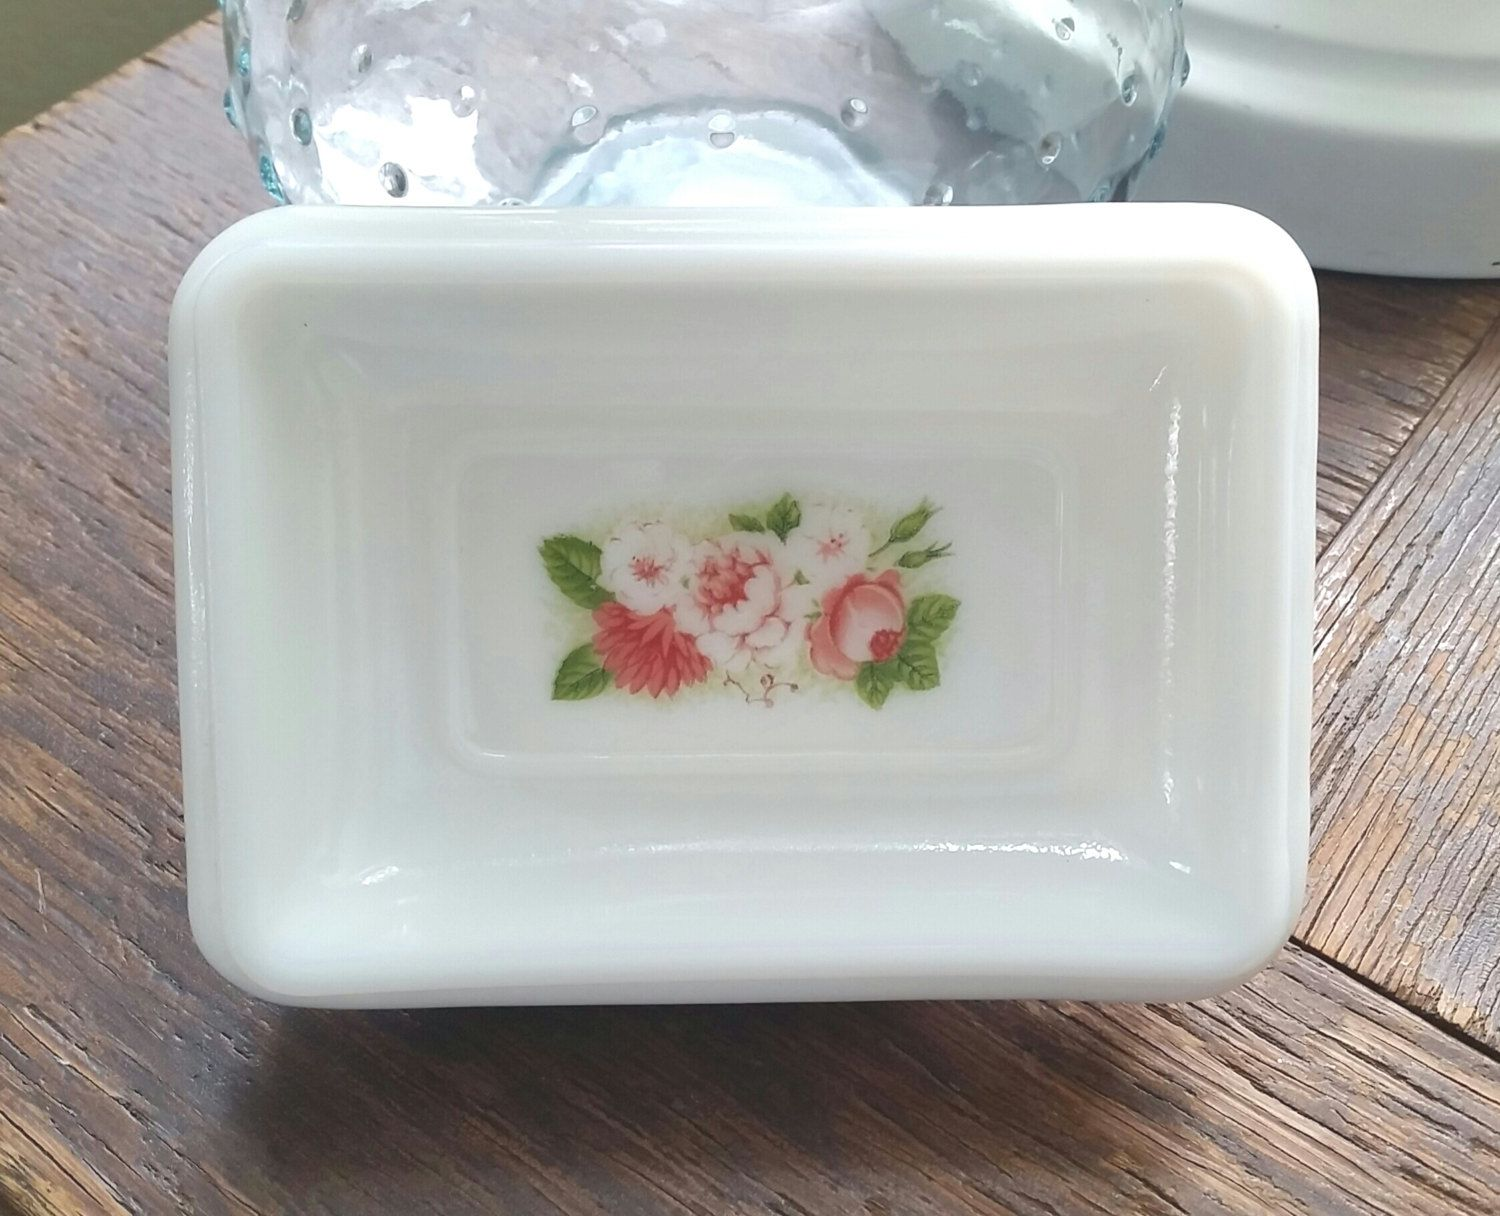 Bathroom Accessories Vintage vintage avon milk glass pedestal floral soap dish. vintage